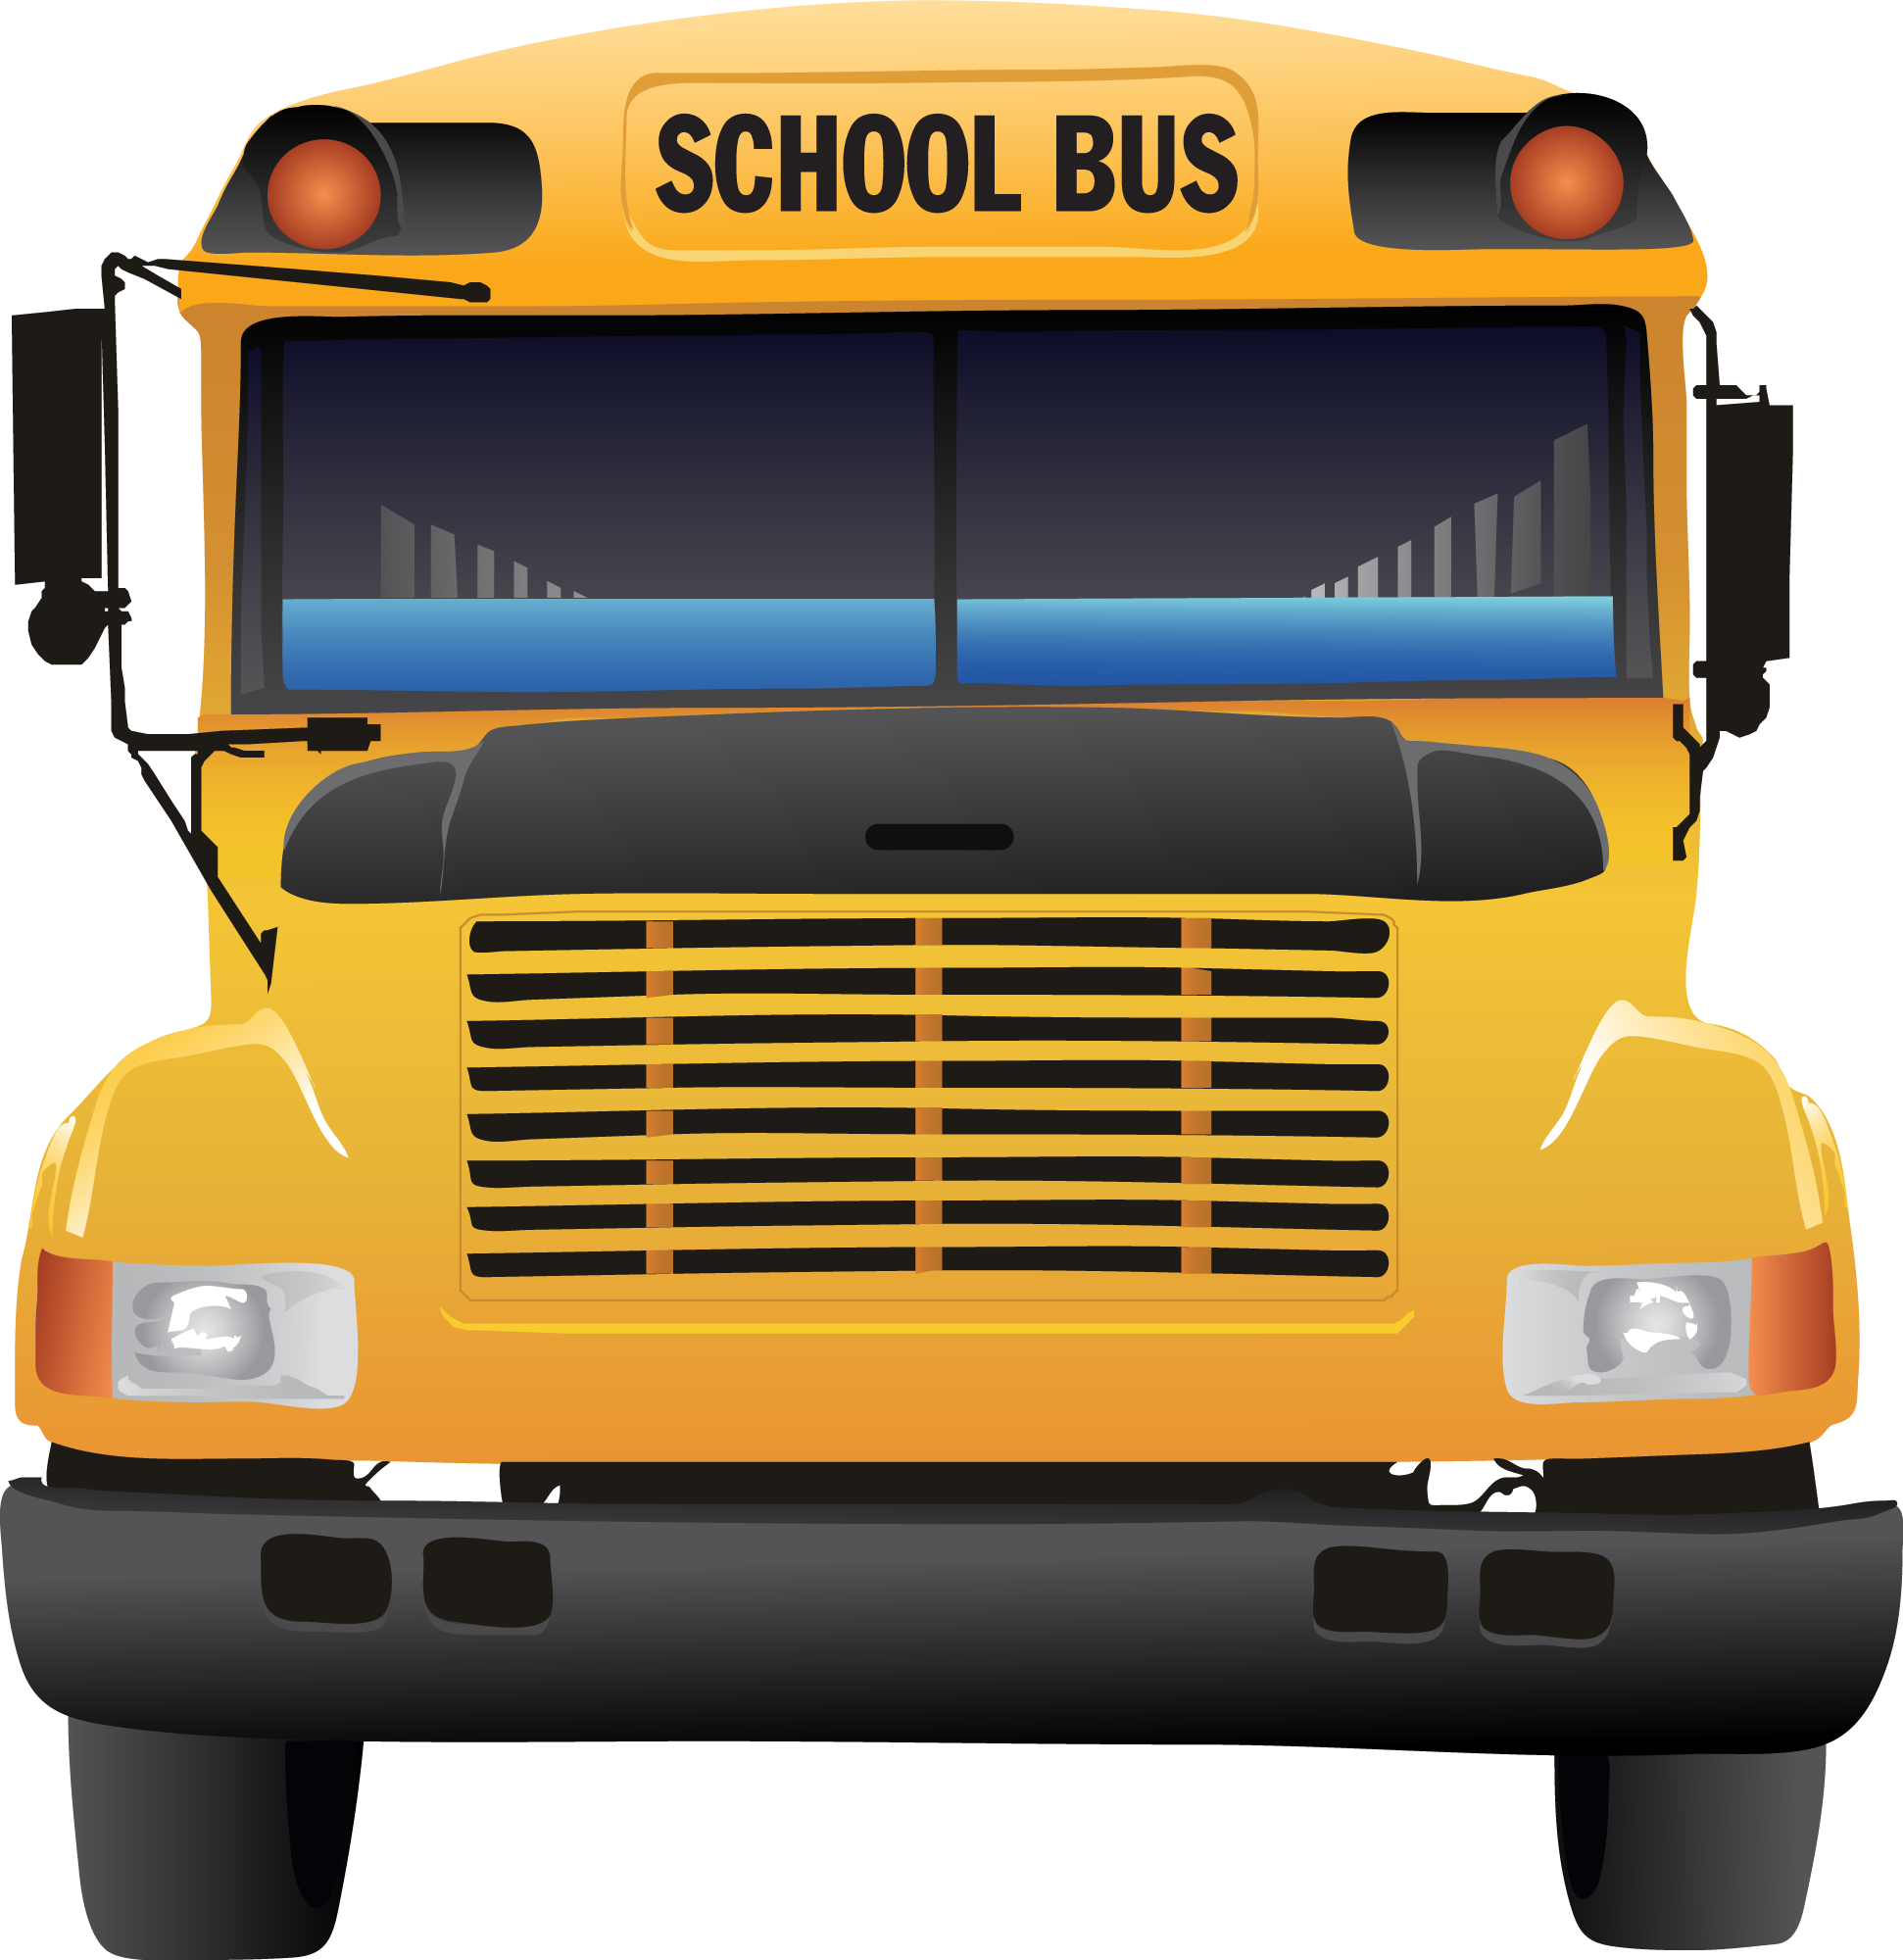 School bus front clipart vector black and white library School Bus from Clipart Collection Version 1.0 (1) ©2012 Macmanus ... vector black and white library